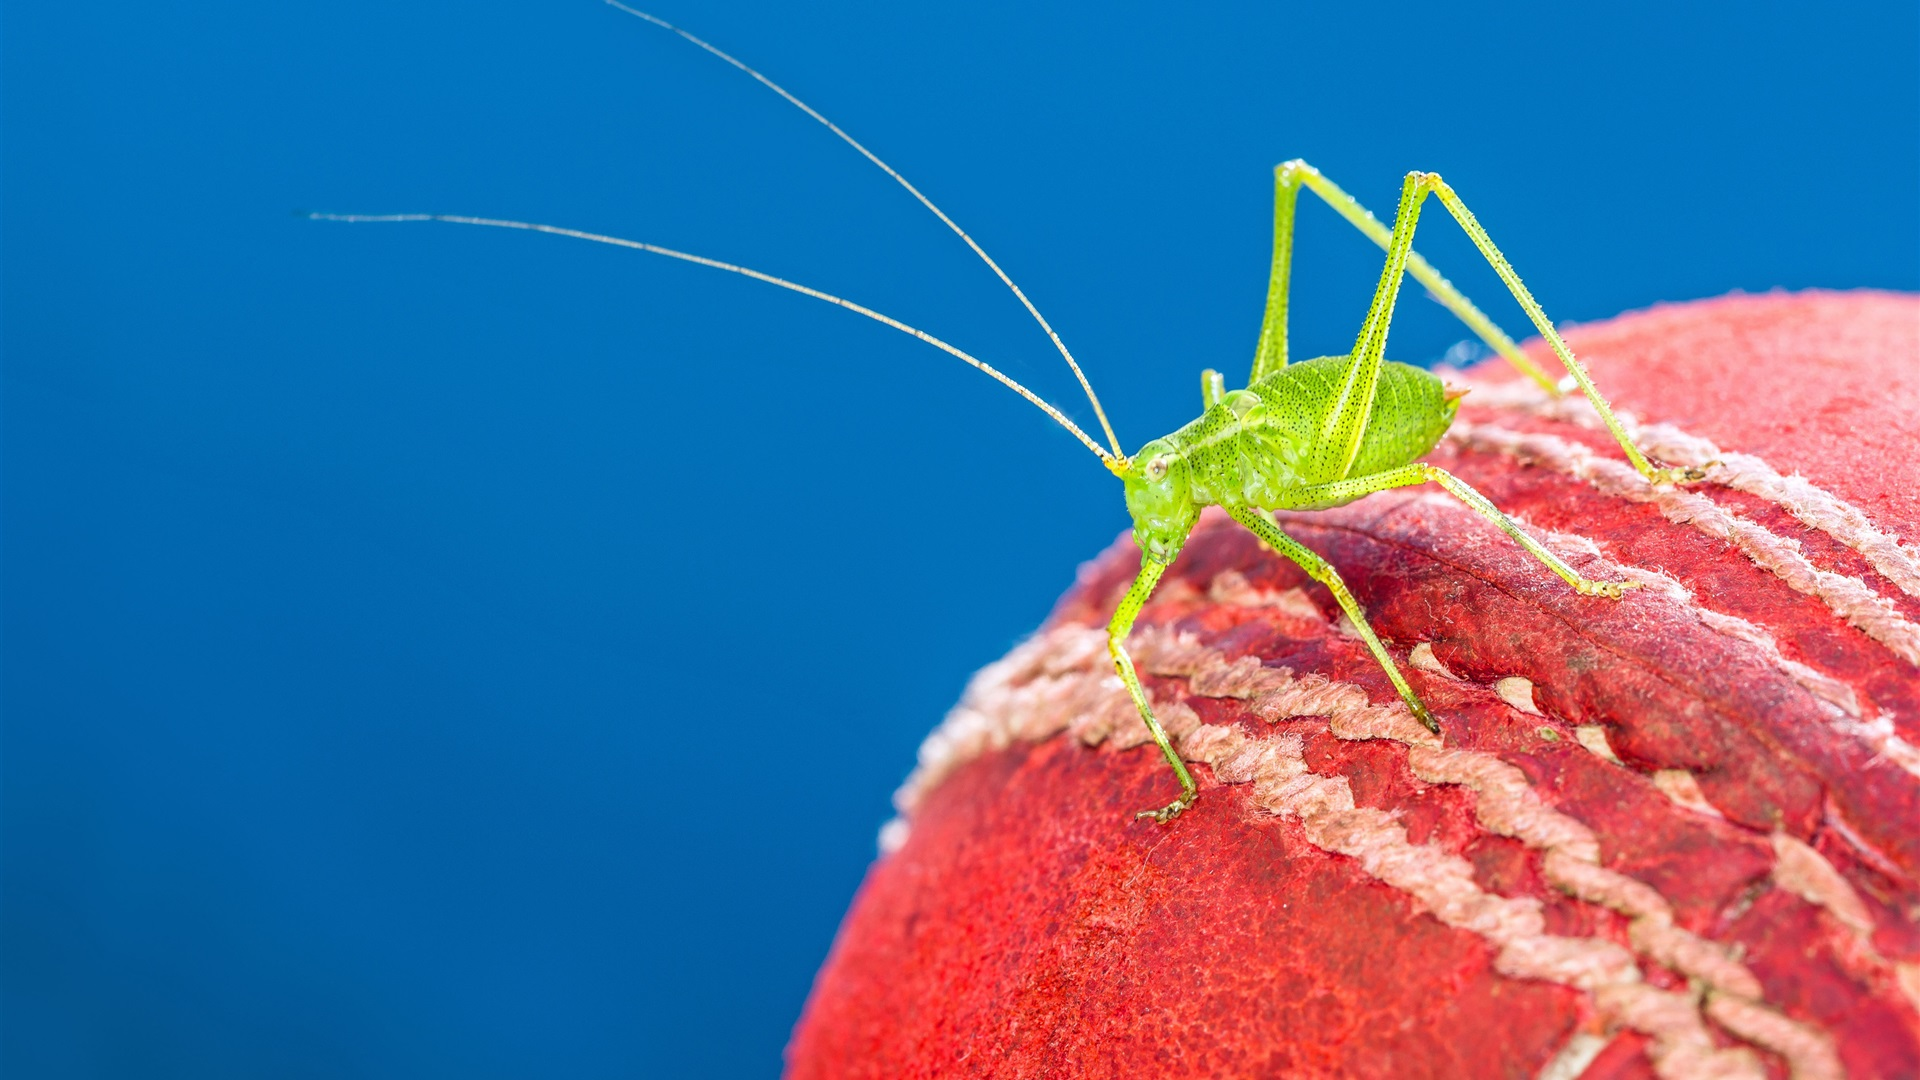 wallpaper cricket ball  green insect 3840x2160 uhd 4k